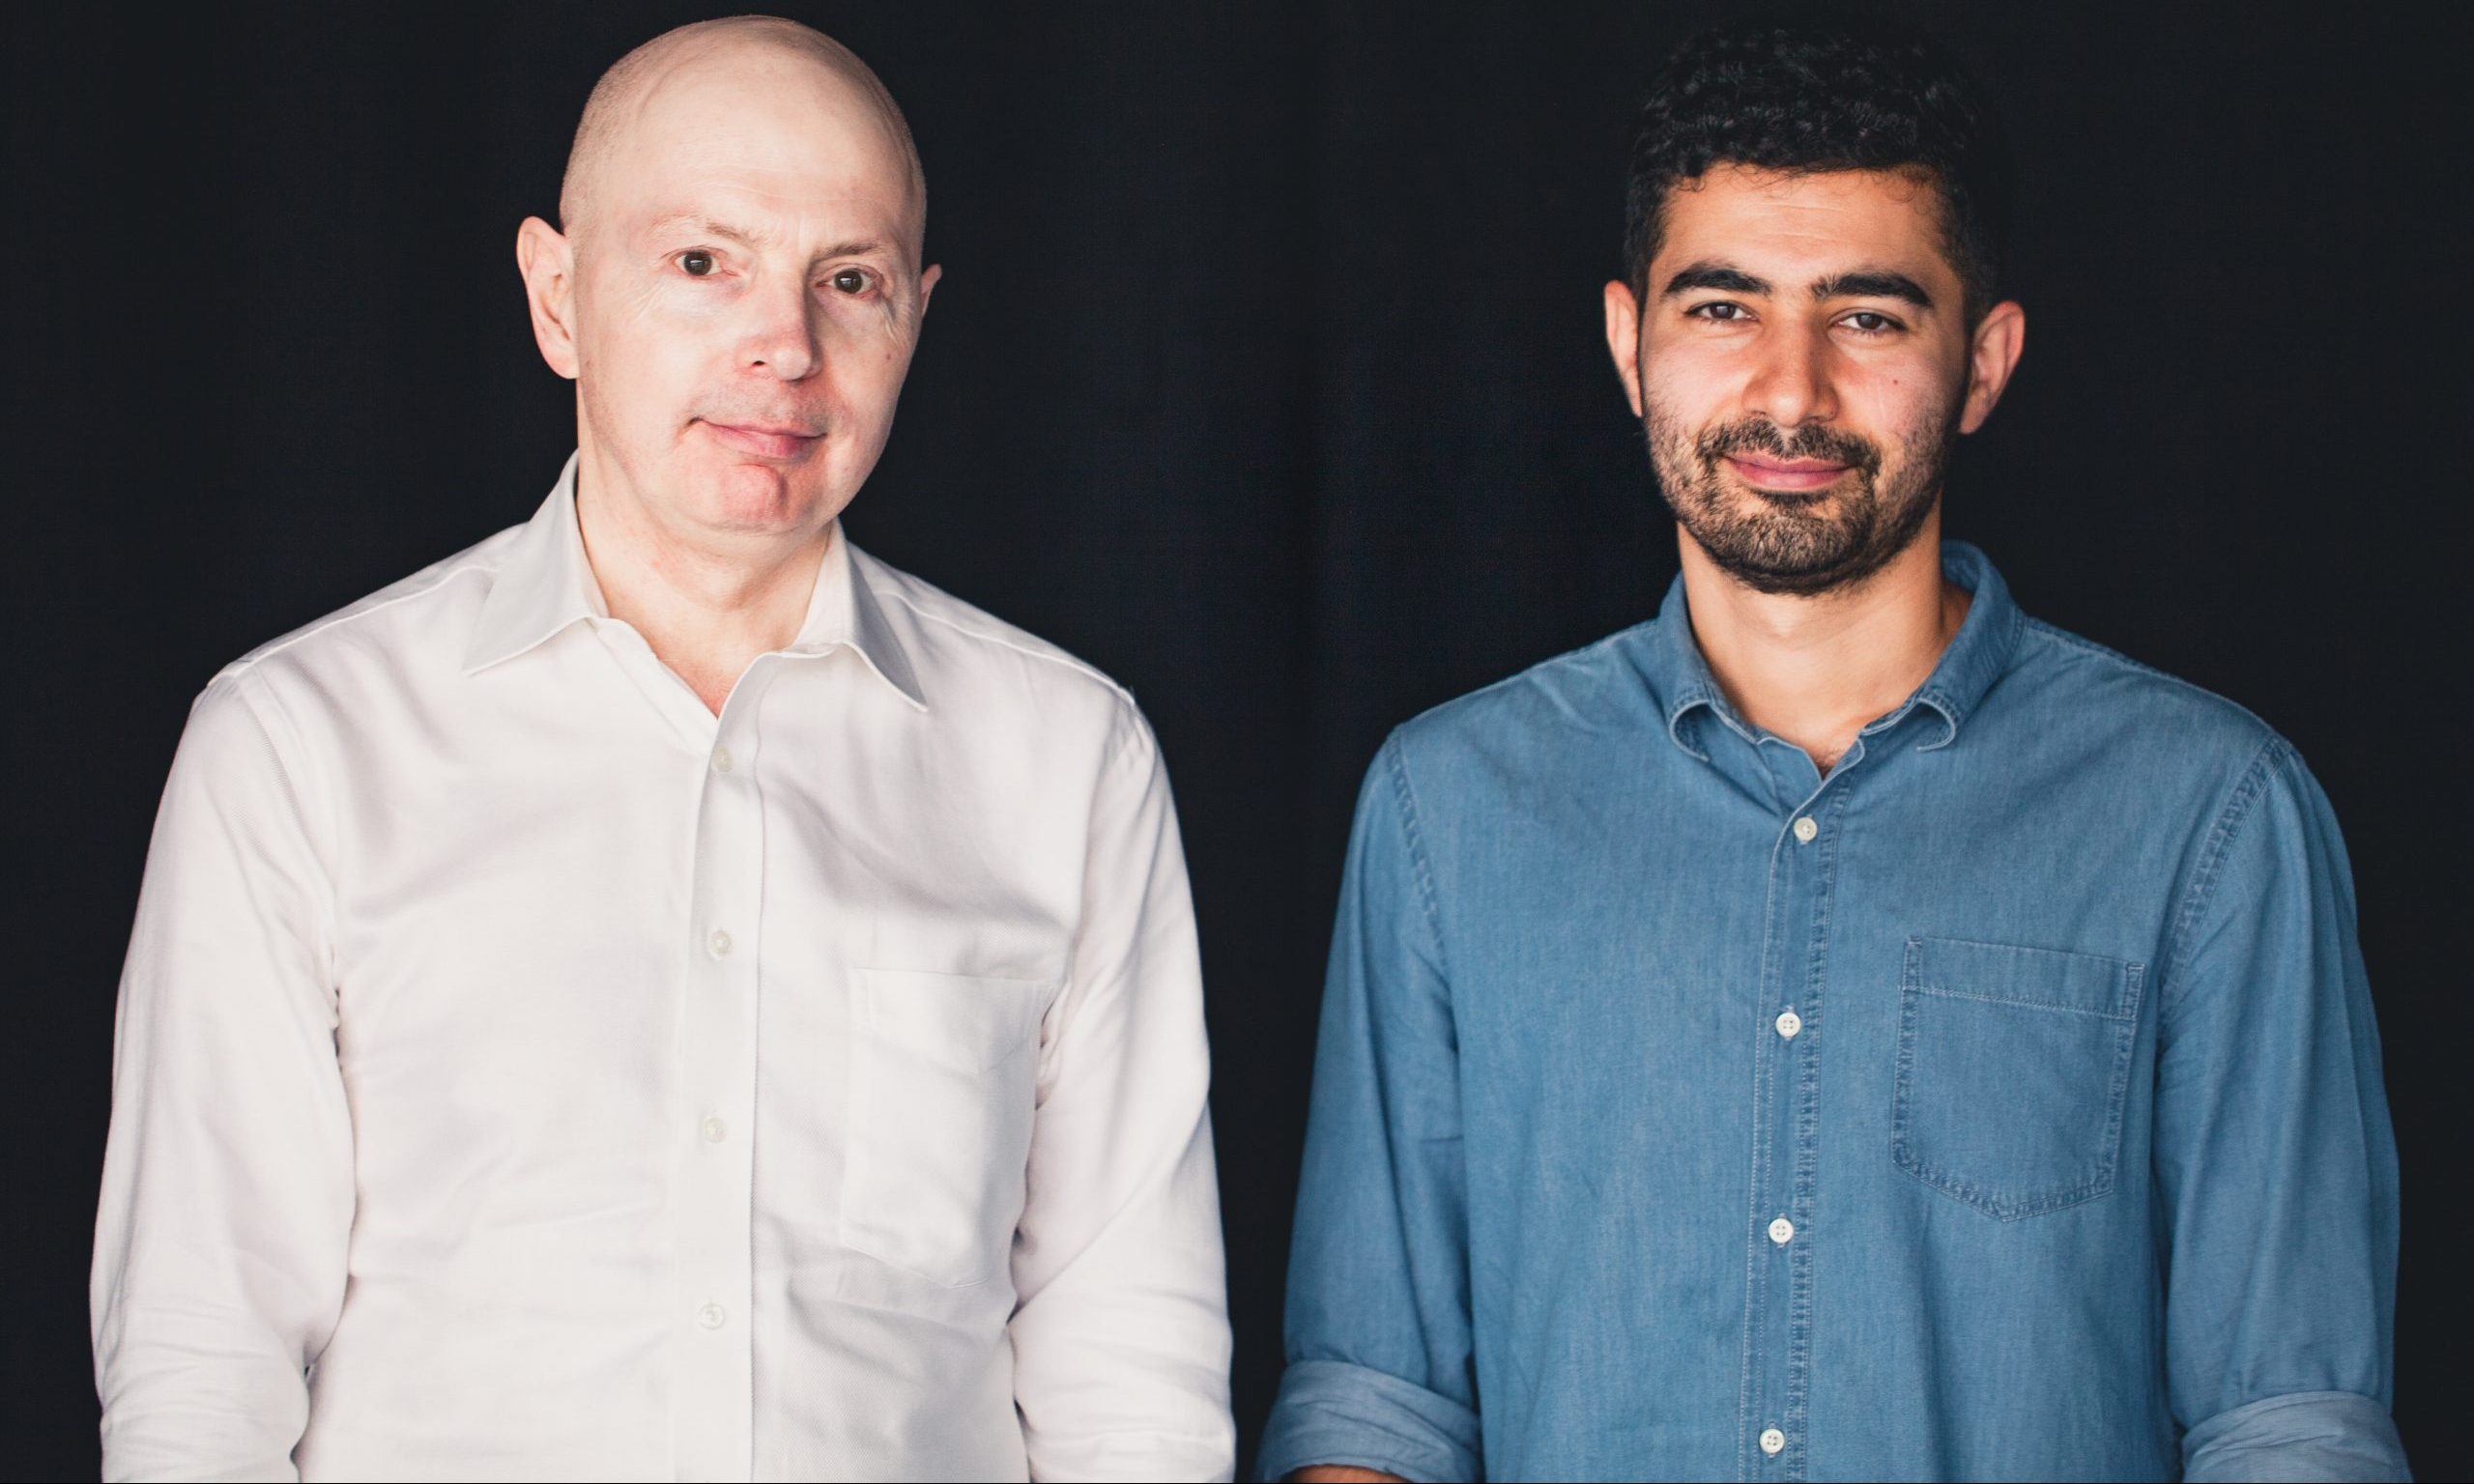 """David Hush and Hamed Sadeghi Help Us Experience Some """"Bliss"""" Through Sounds and Images"""